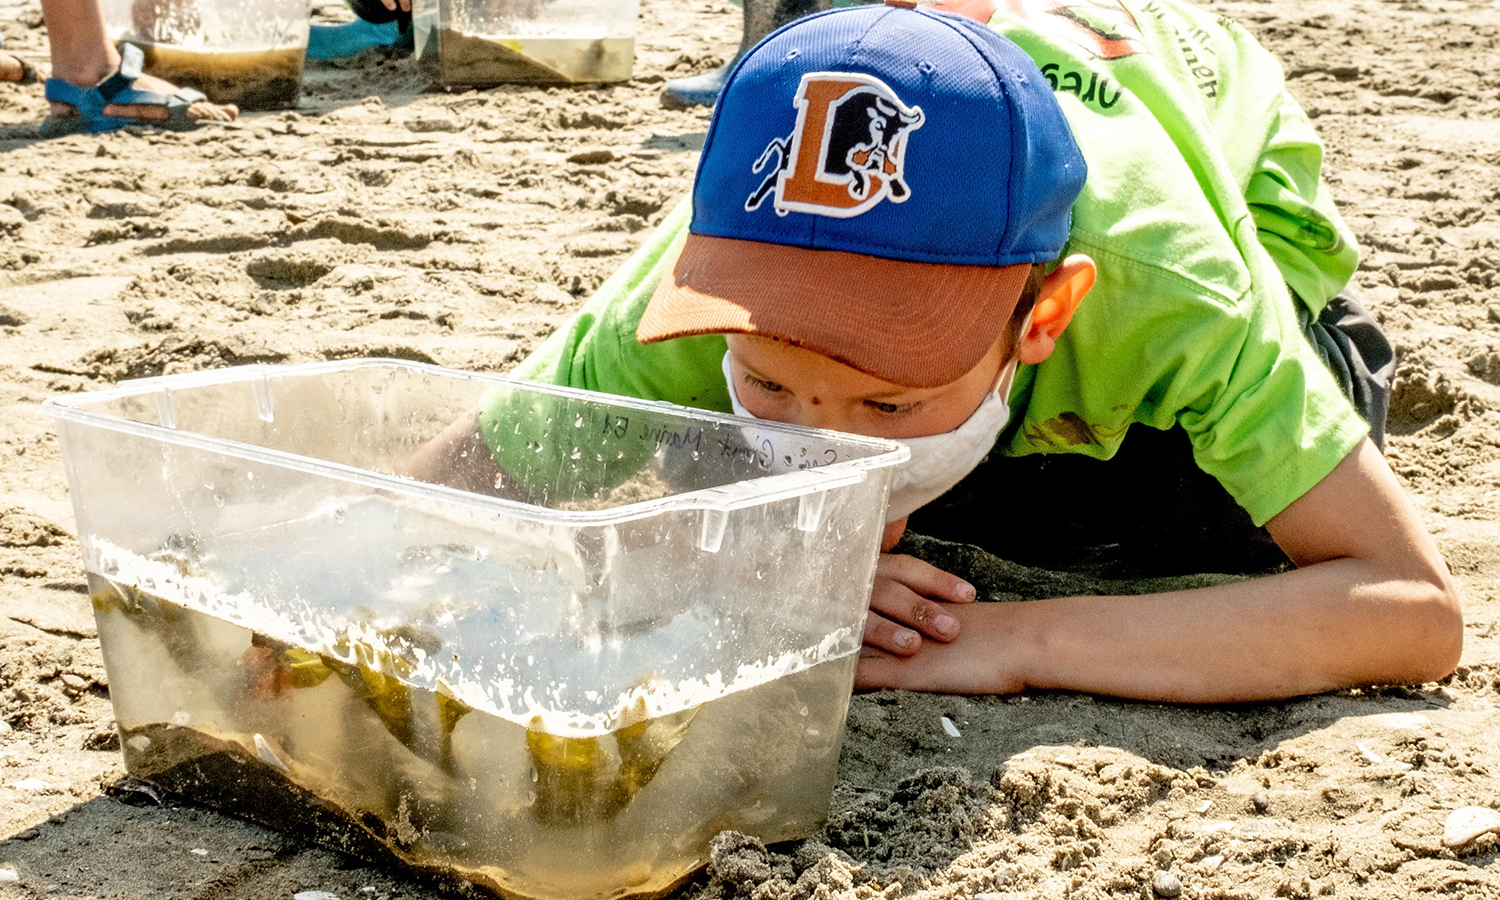 A child crouches on a beach to observe a small aquarium with collected crabs during a day camp.